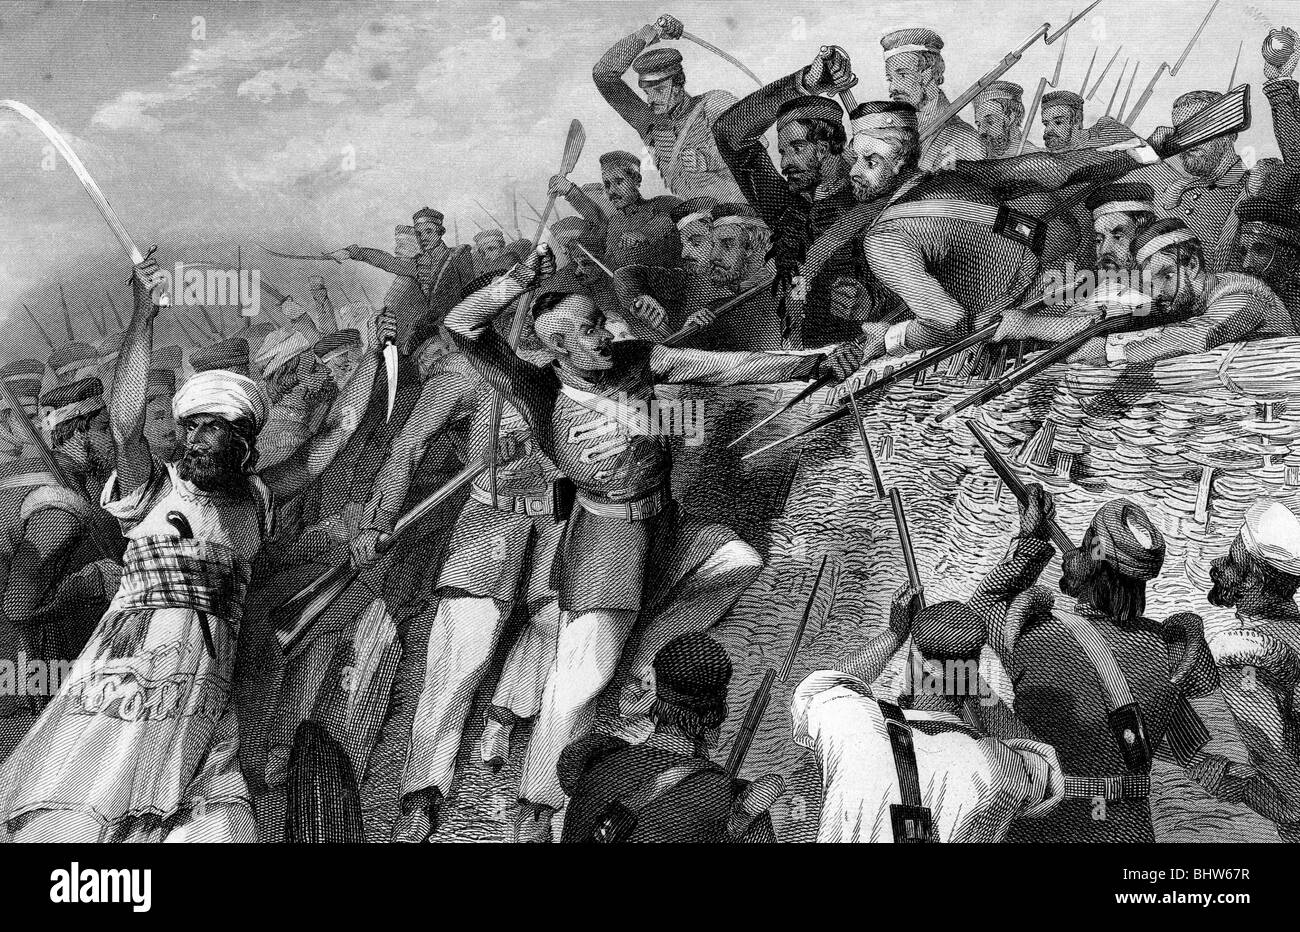 INDIAN MUTINY - Indian mutineers attack the Redan Battery at Lucknow 30 July 1857. - Stock Image